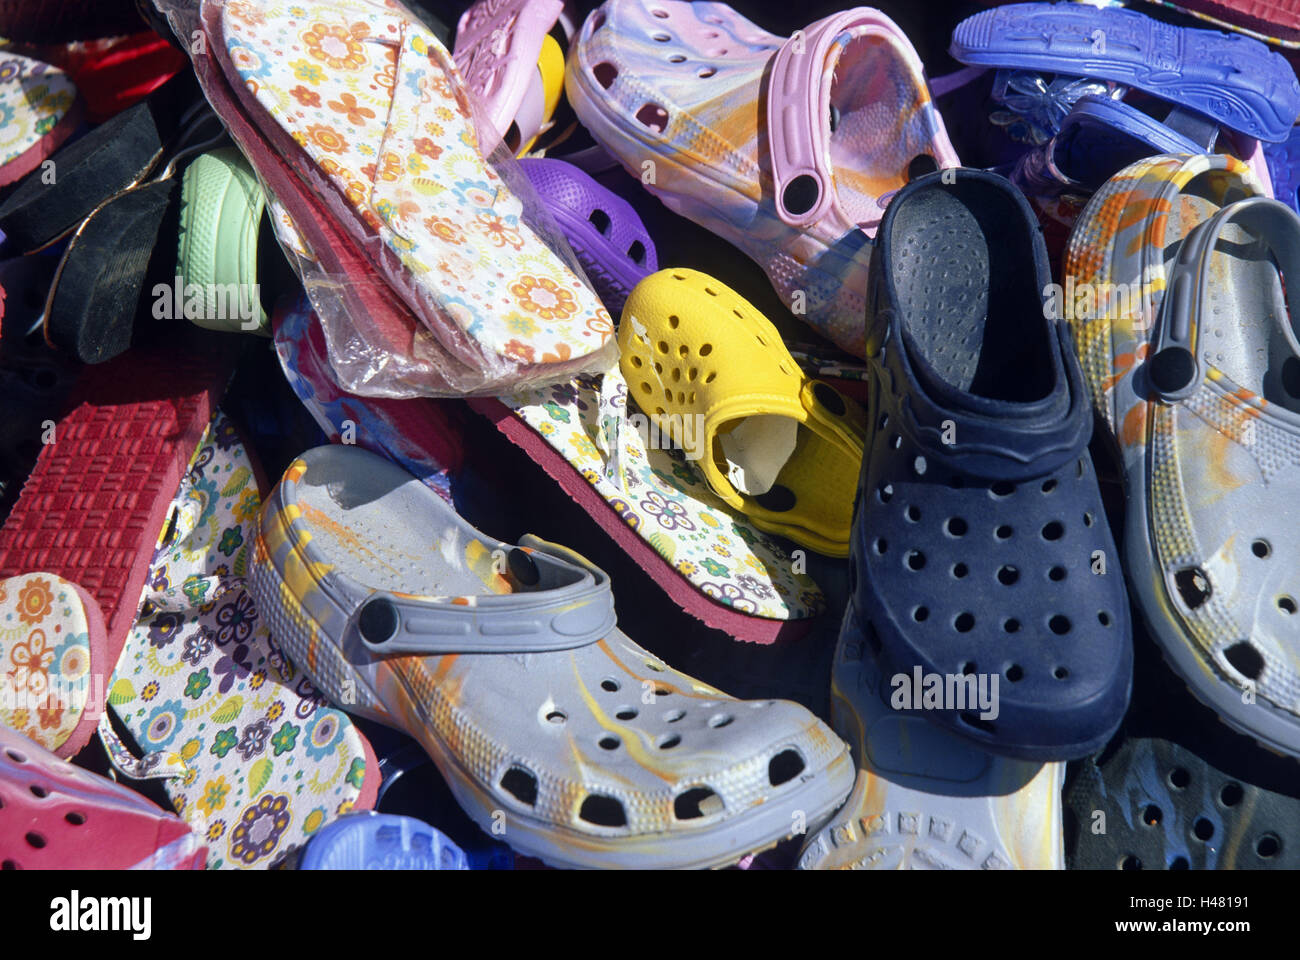 Summer shoes, brightly, sales, Italy, island, Sardinia, shoes, summer shoes, shoes, flip flops, Crocs, sales, plastic - Stock Image